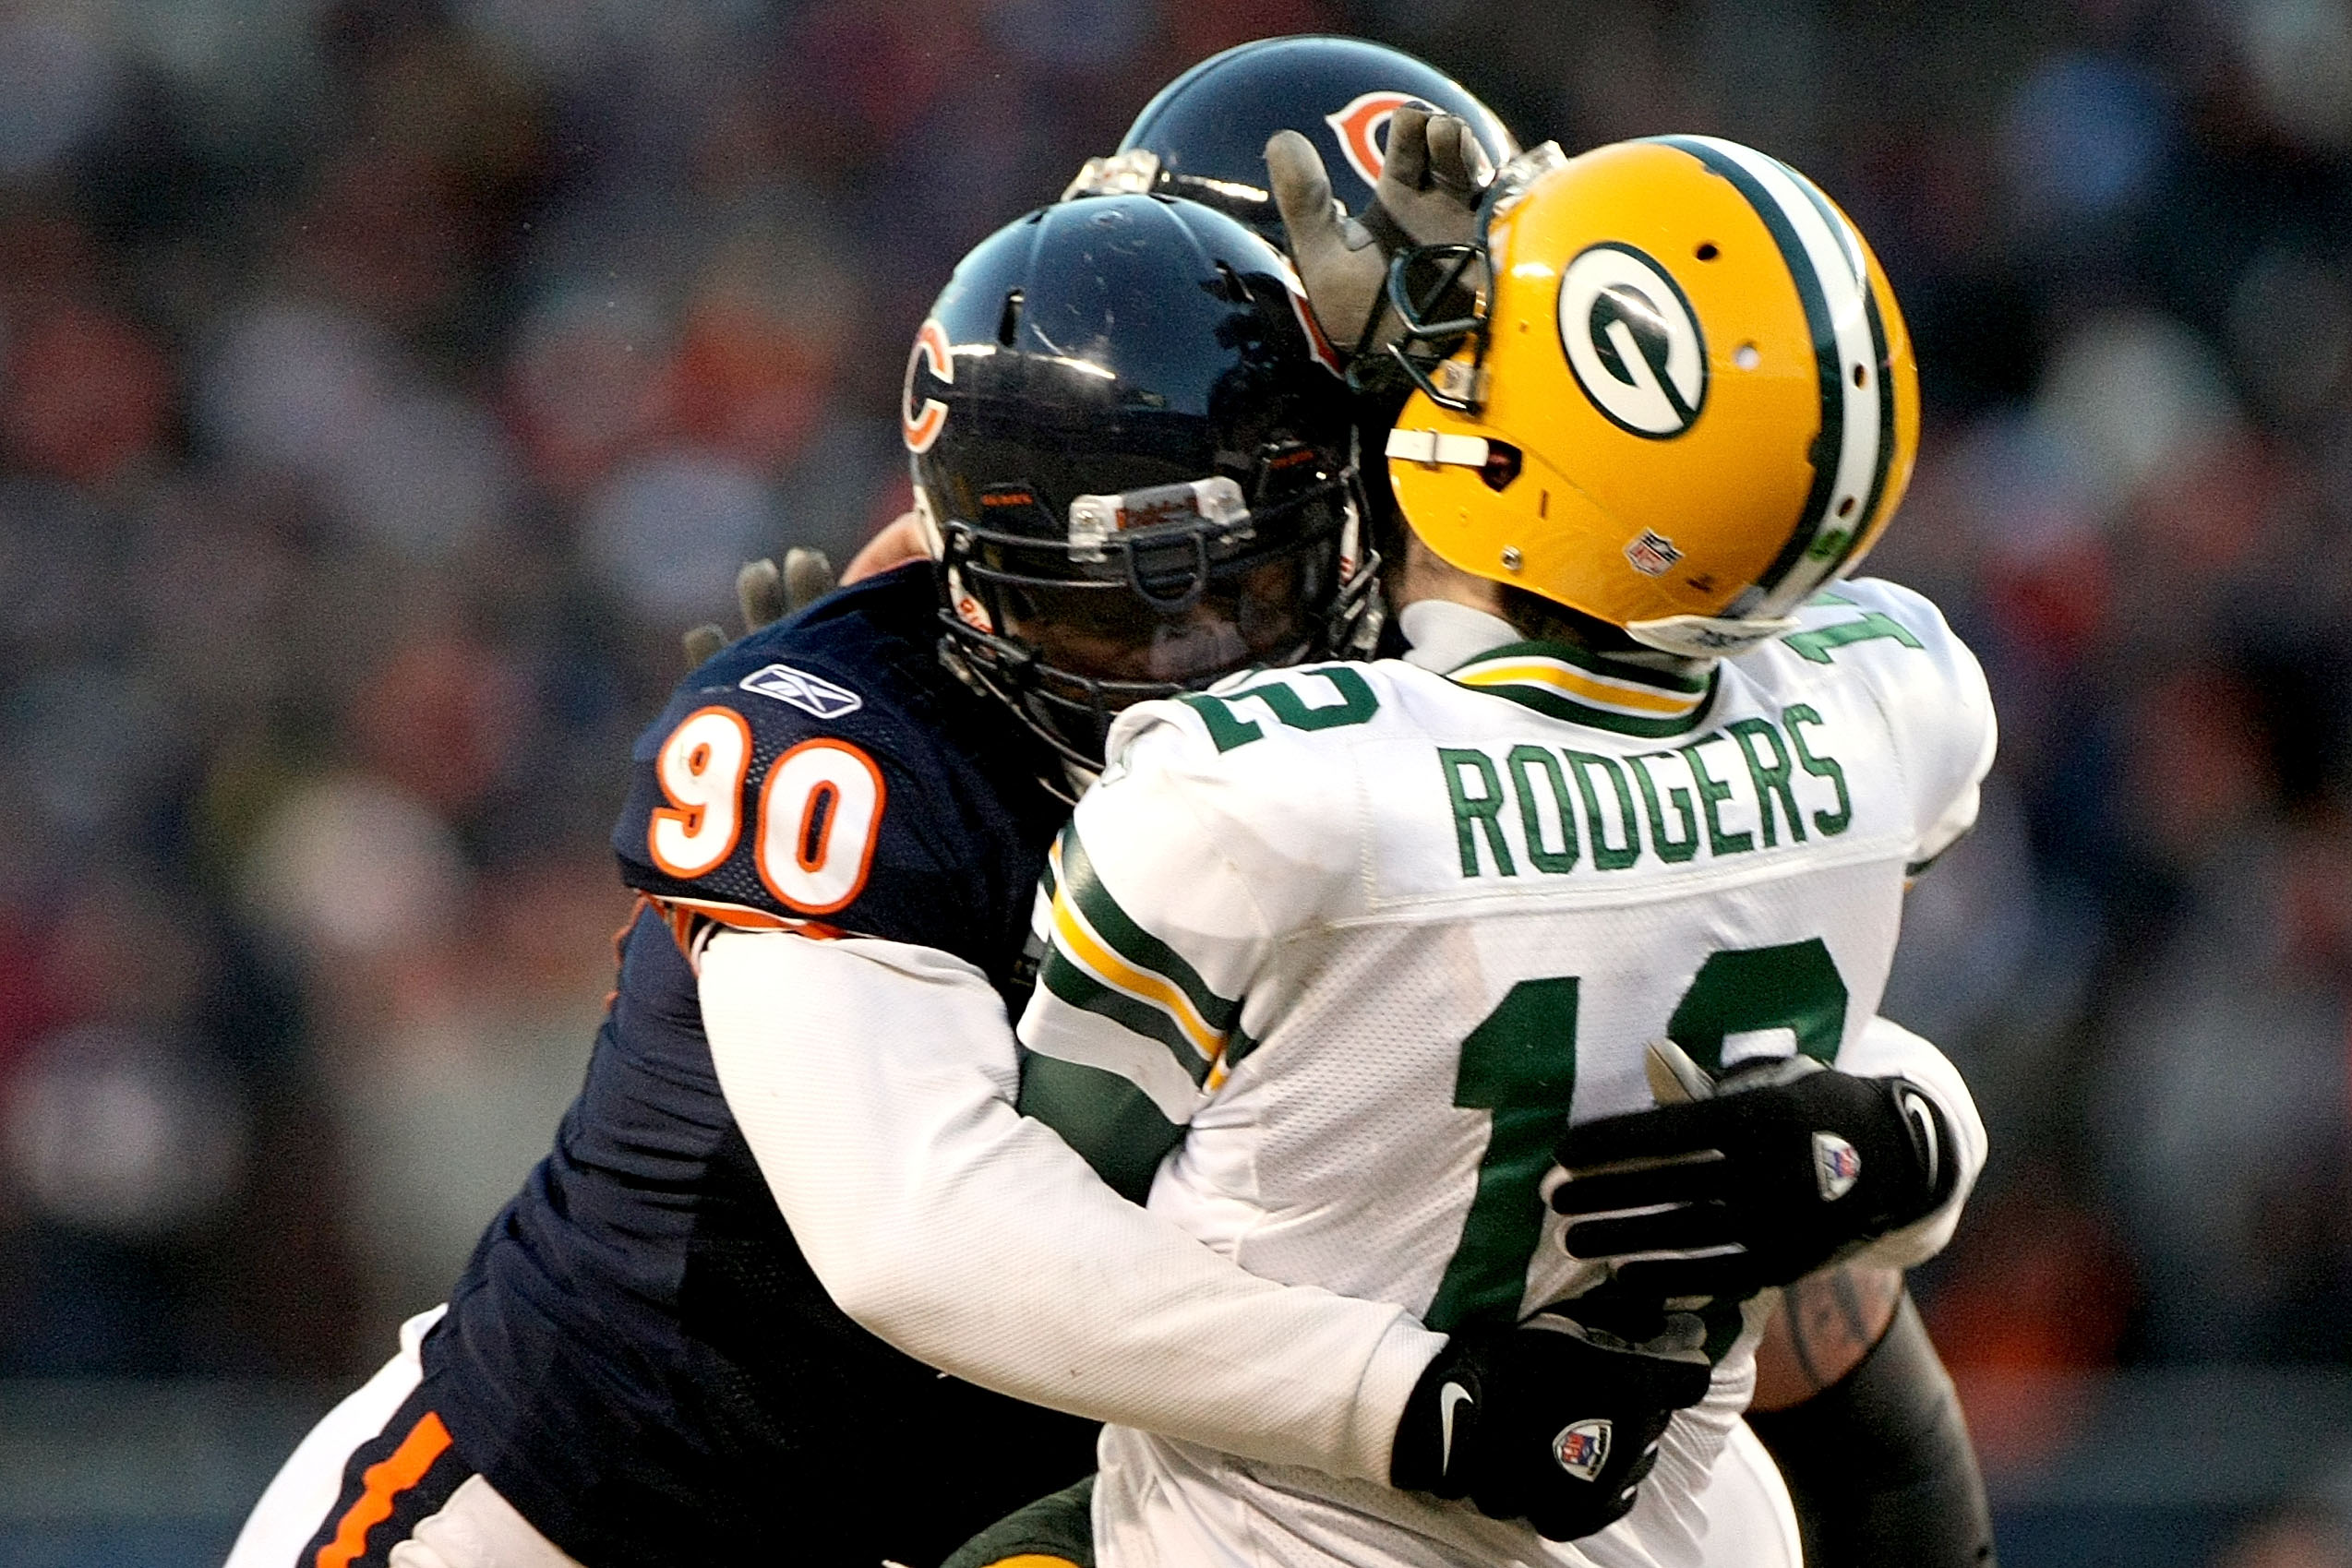 CHICAGO, IL - JANUARY 23:  Quarterback Aaron Rodgers #12 of the Green Bay Packers is hit by Julius Peppers #90 of the Chicago Bears in the helmet as Peppers was called for a personal foul in the fourth quarter of the NFC Championship Game at Soldier Field